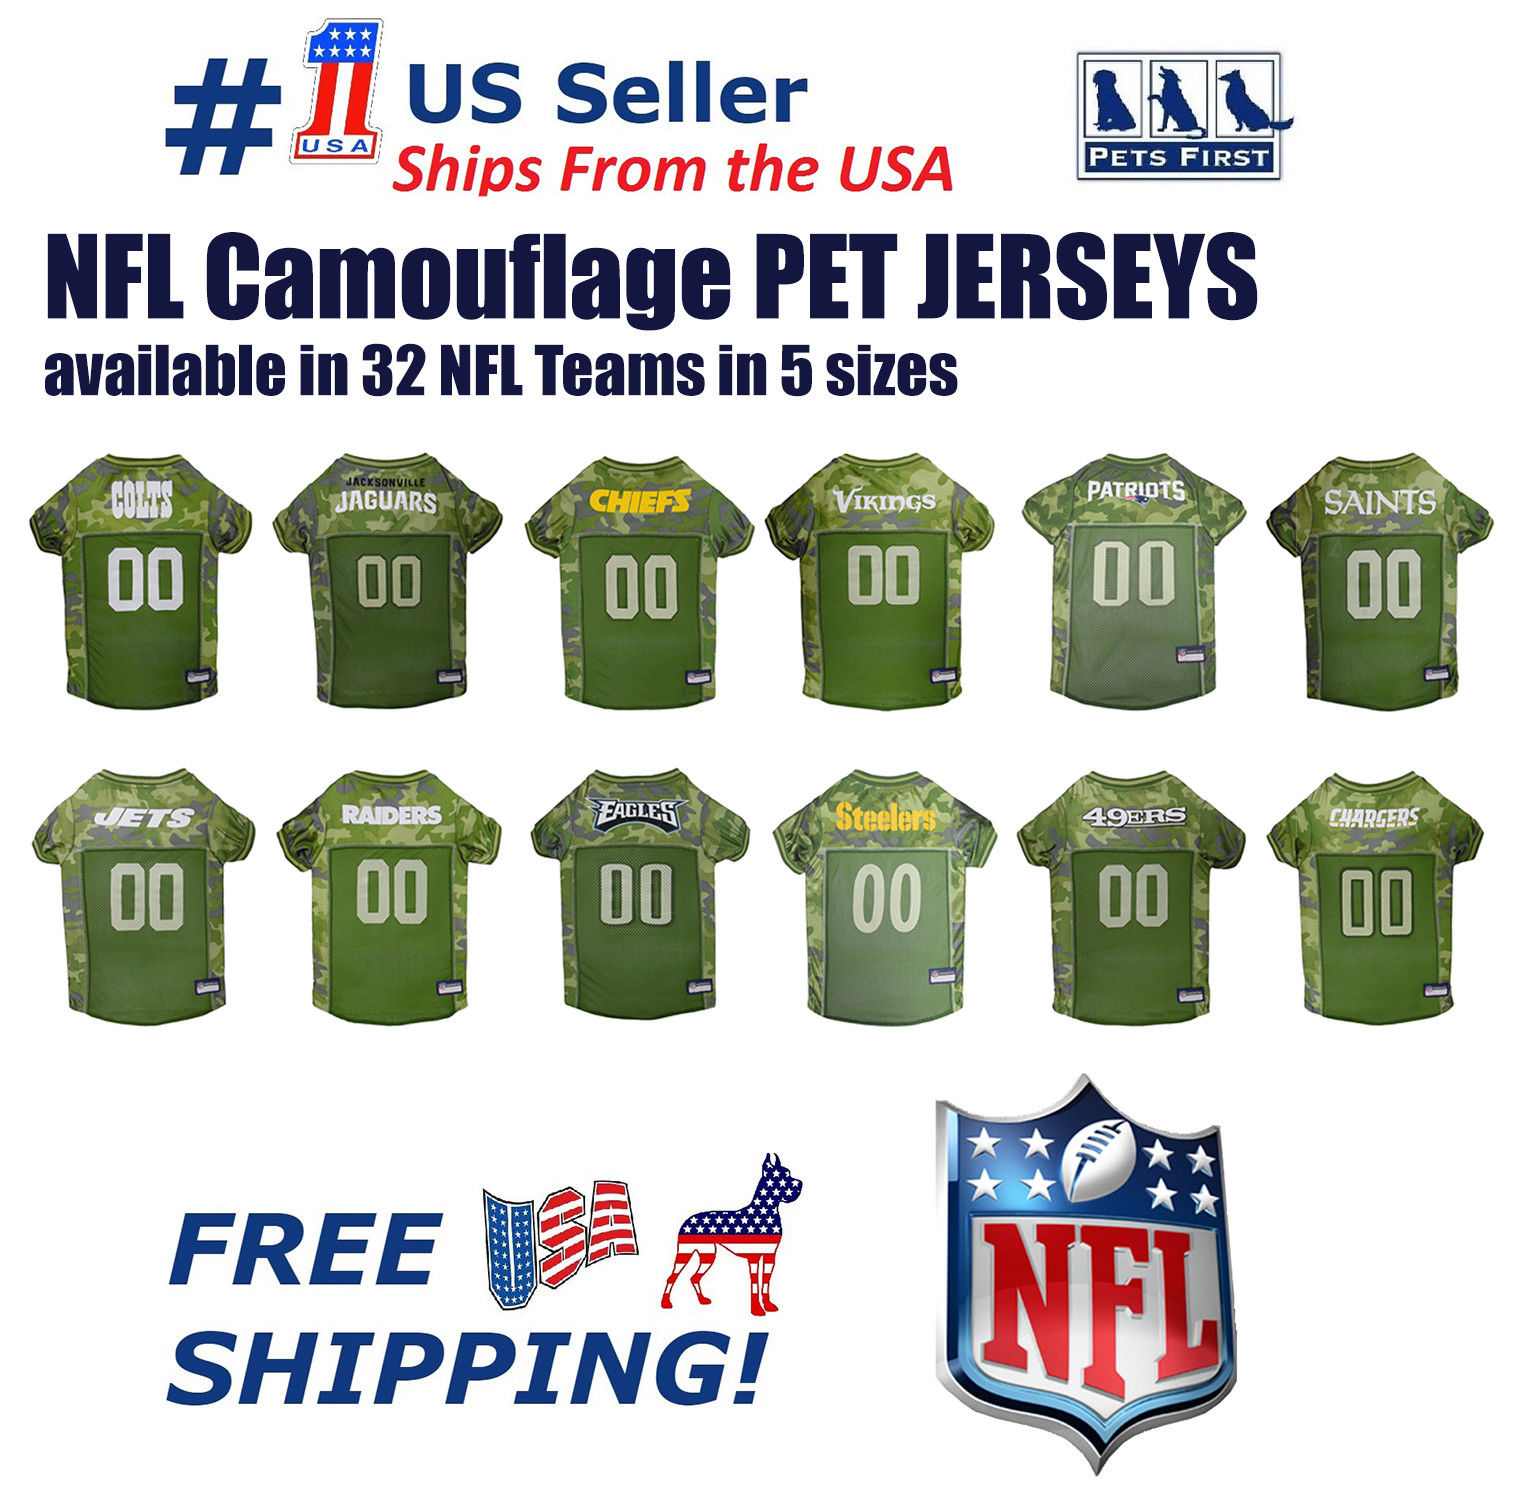 Pets First NFL Jacksonville Jaguars Camouflage Pet Jersey for Cats and Dogs - Licensed